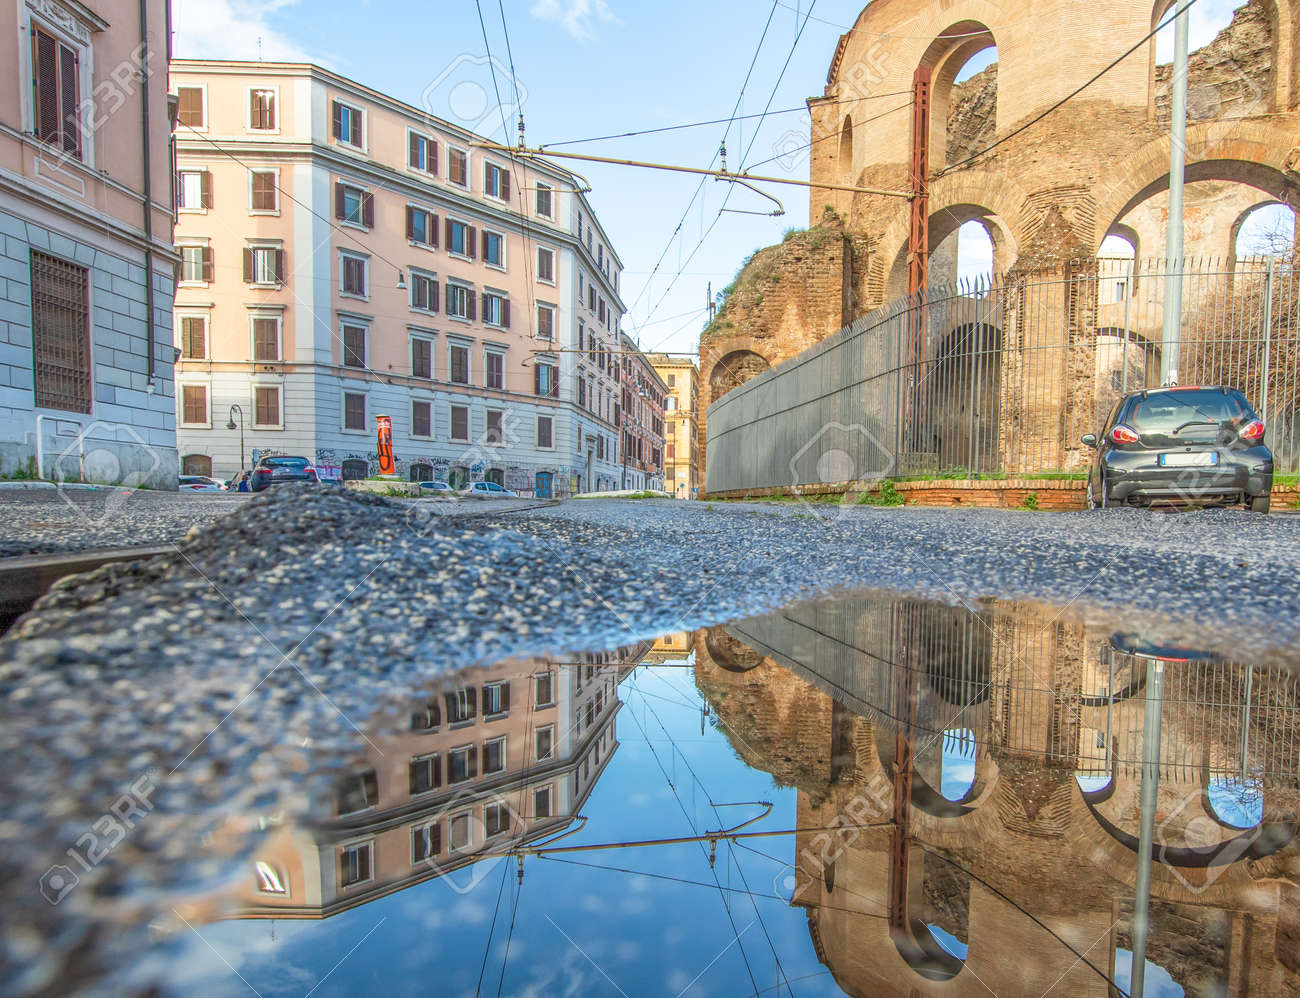 Rome, Italy - in Winter time, frequent rain showers create pools in which the wonderful Old Town of Rome reflects like in a mirror. Here in particular Via Giolitti - 163759496